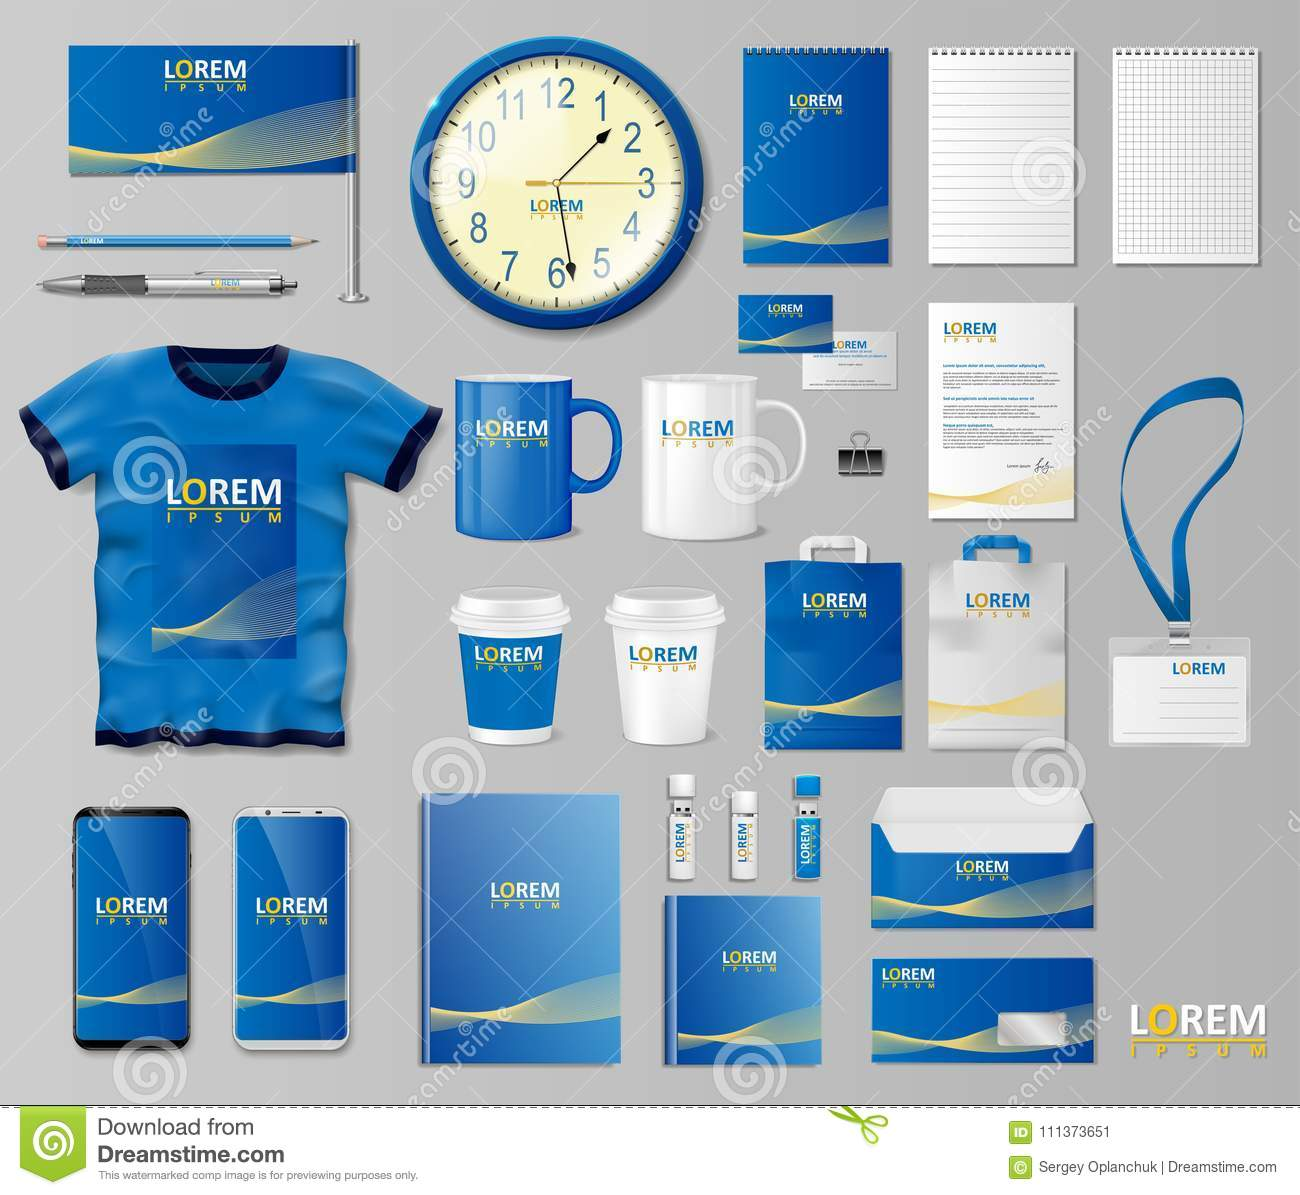 corporate branding identity template design stationery mockup for